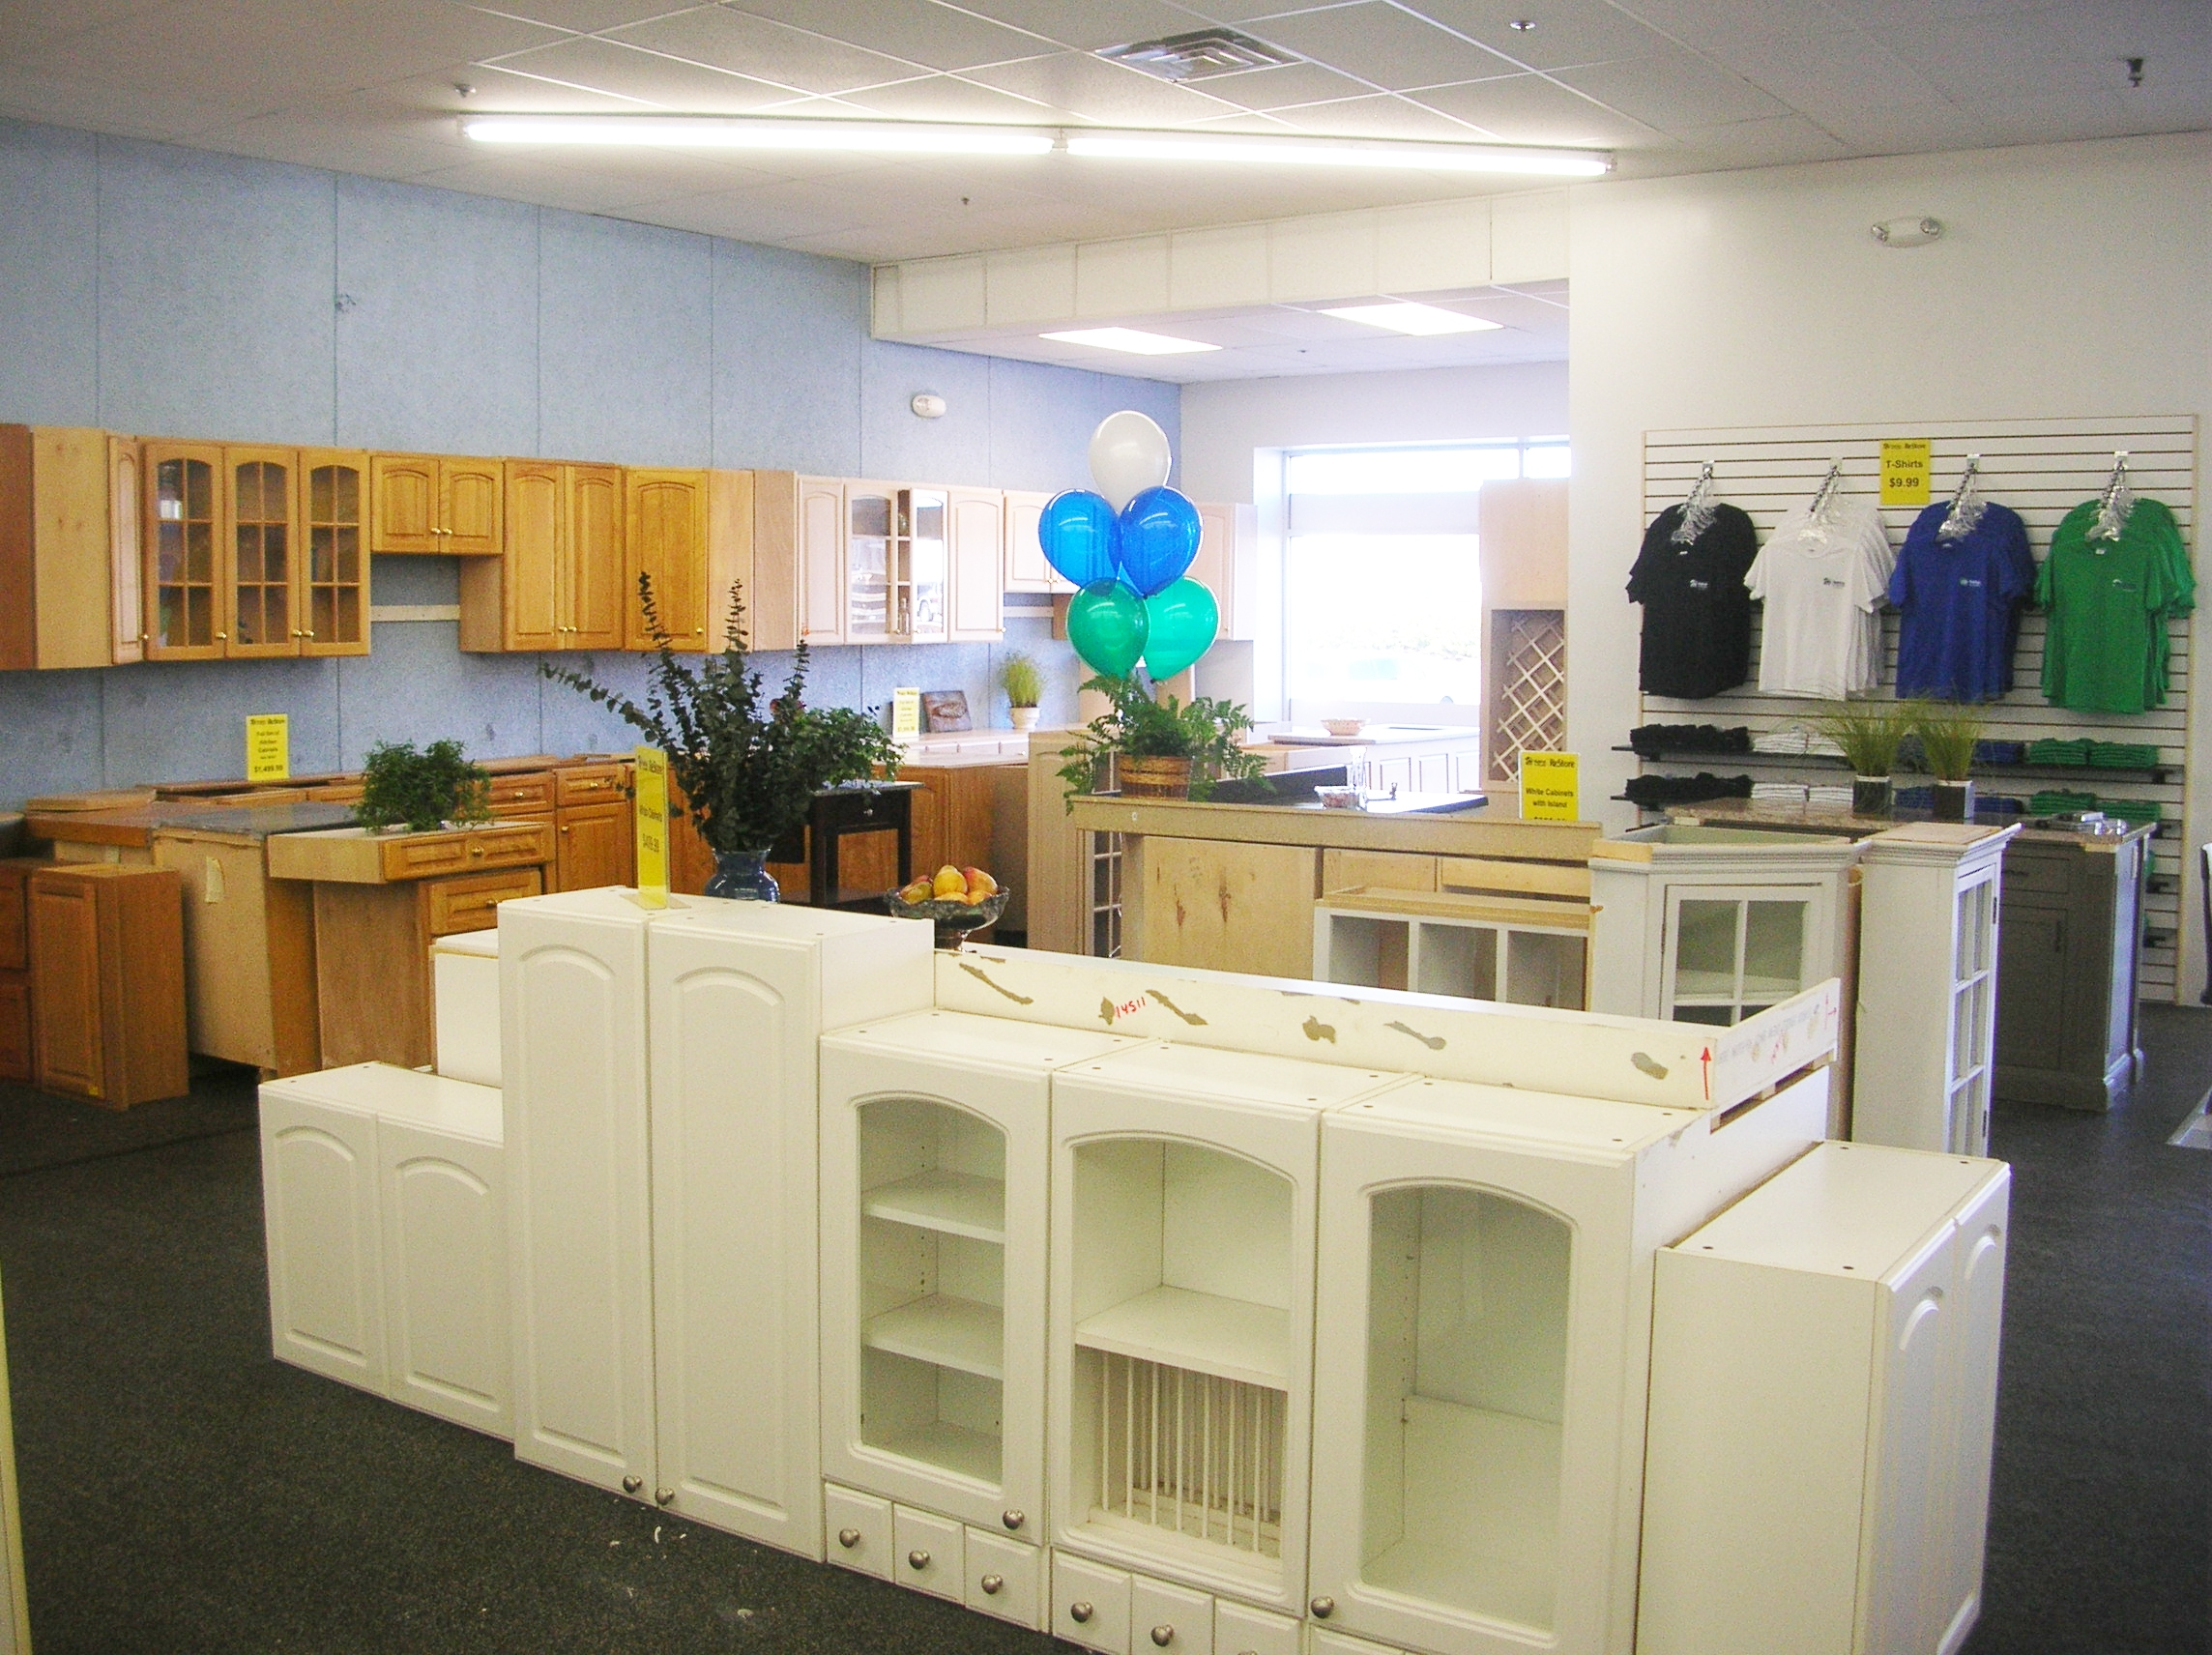 Old Kitchen Cabinets Donation